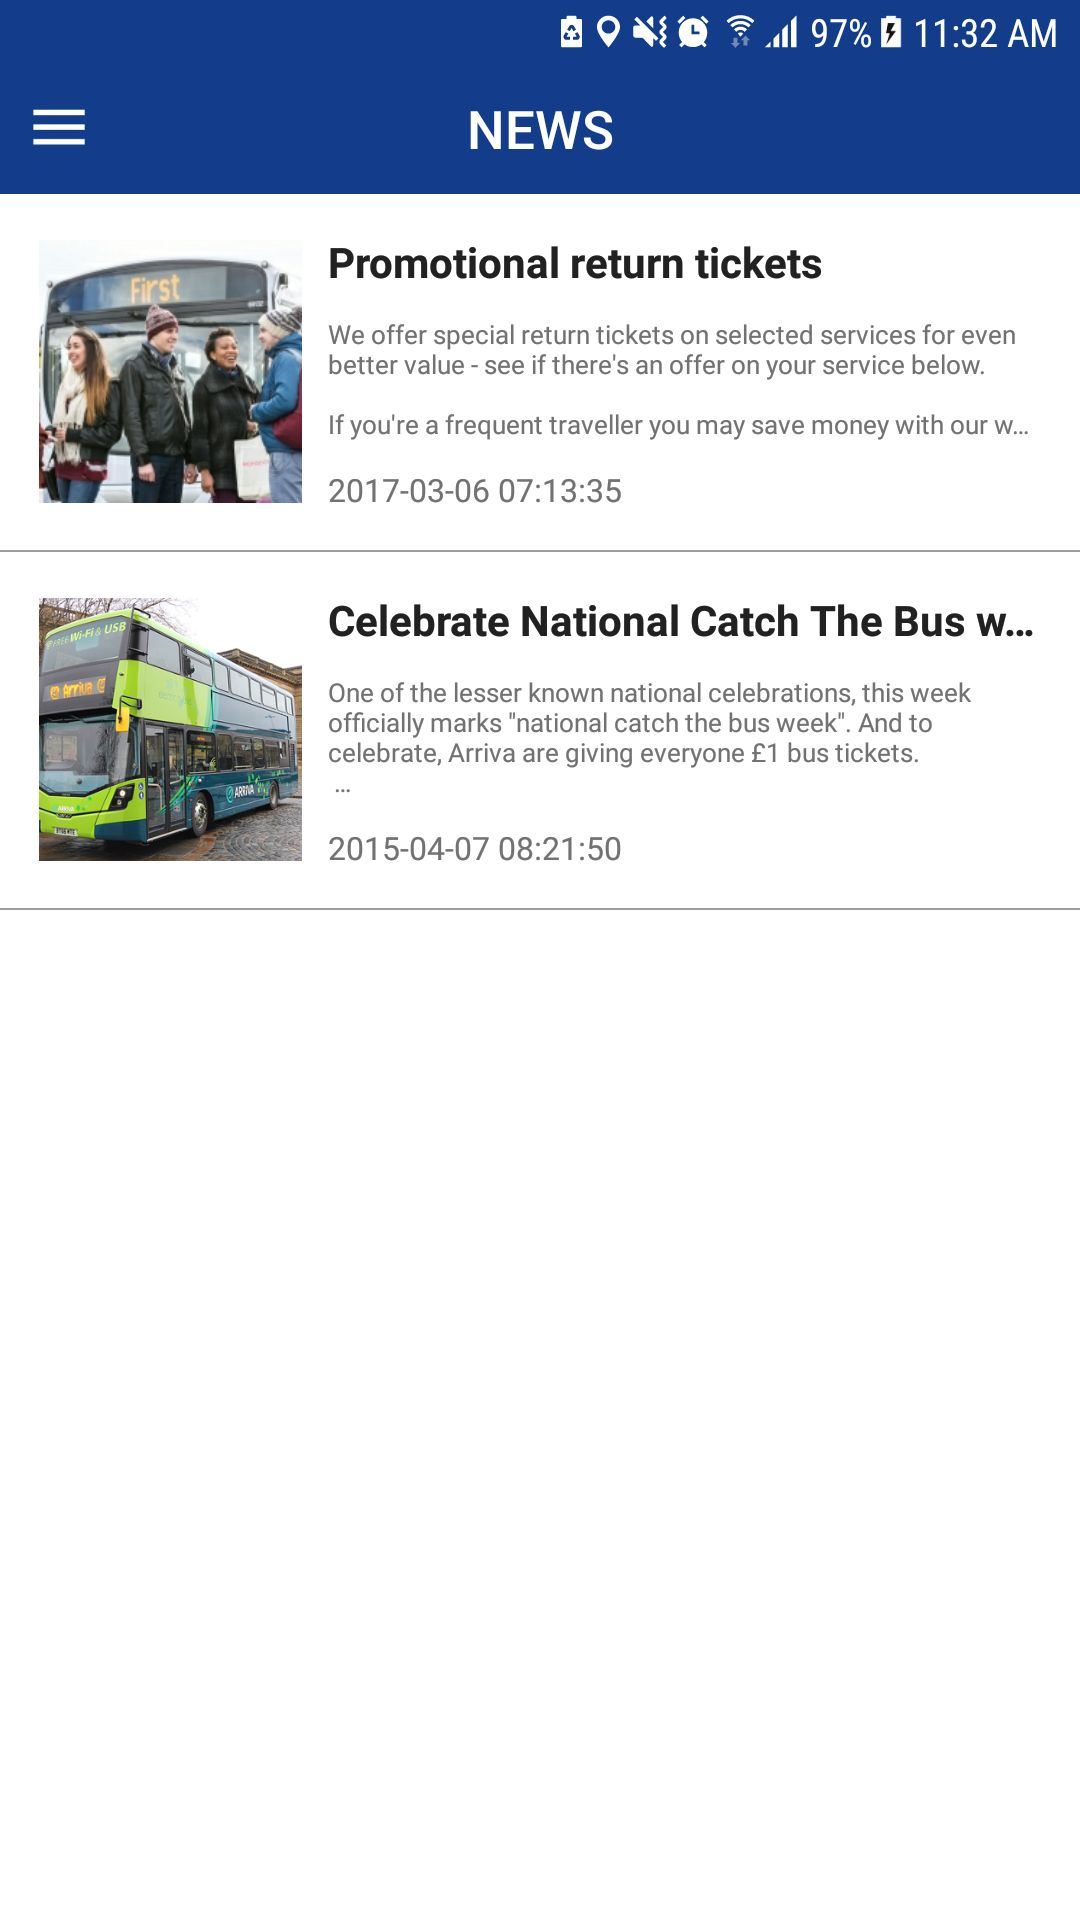 Bus Ticket Booking - Android App Source Code Screenshot 17